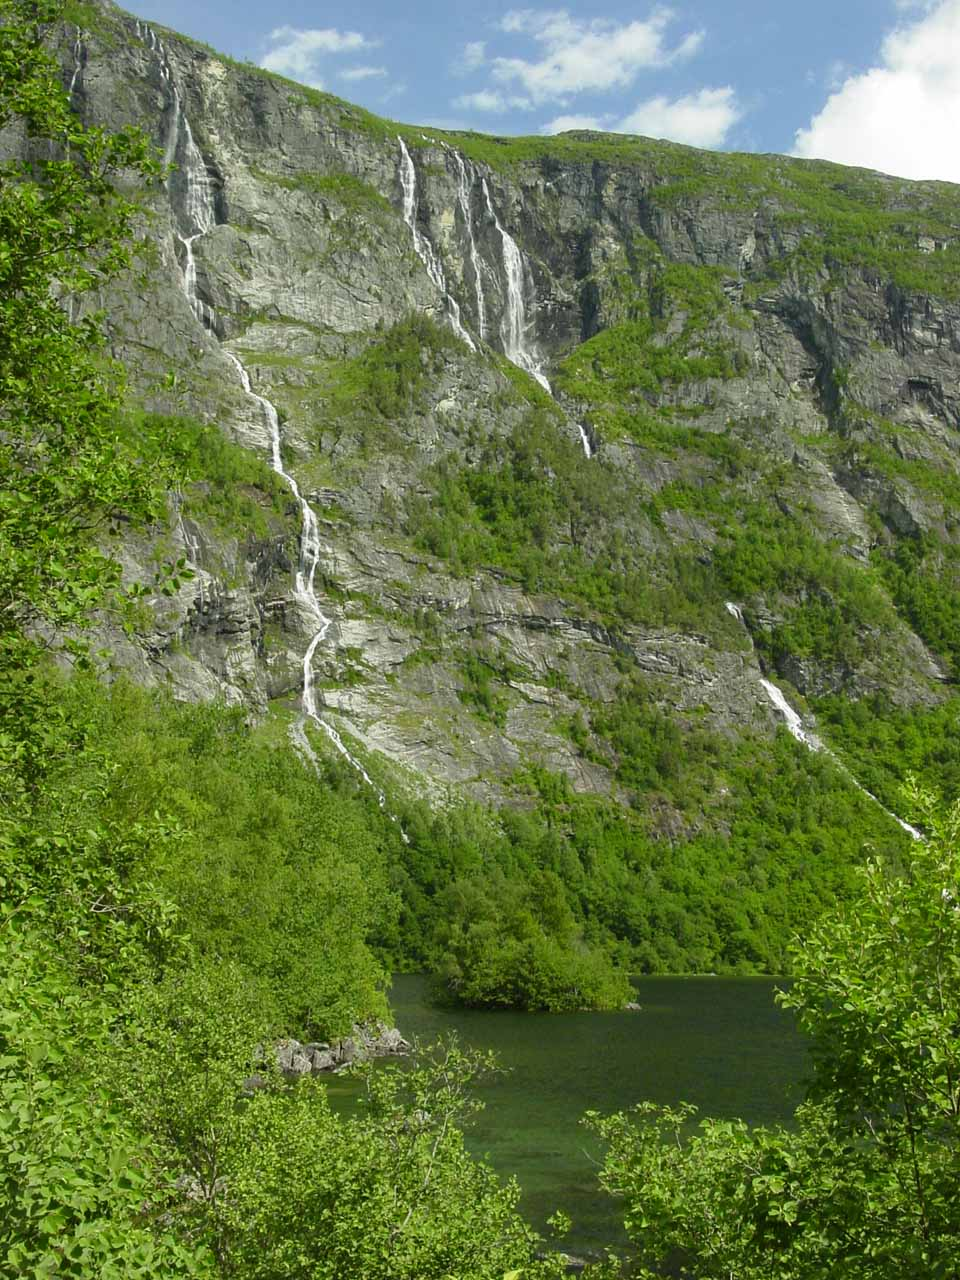 This series of thin waterfalls near what appeared to be the mouth of a lake or thick part of the Aura River, and it might be on the brook Almelibekken (Almelibekkfossen?) or Rangåa (Rangåafossen?)